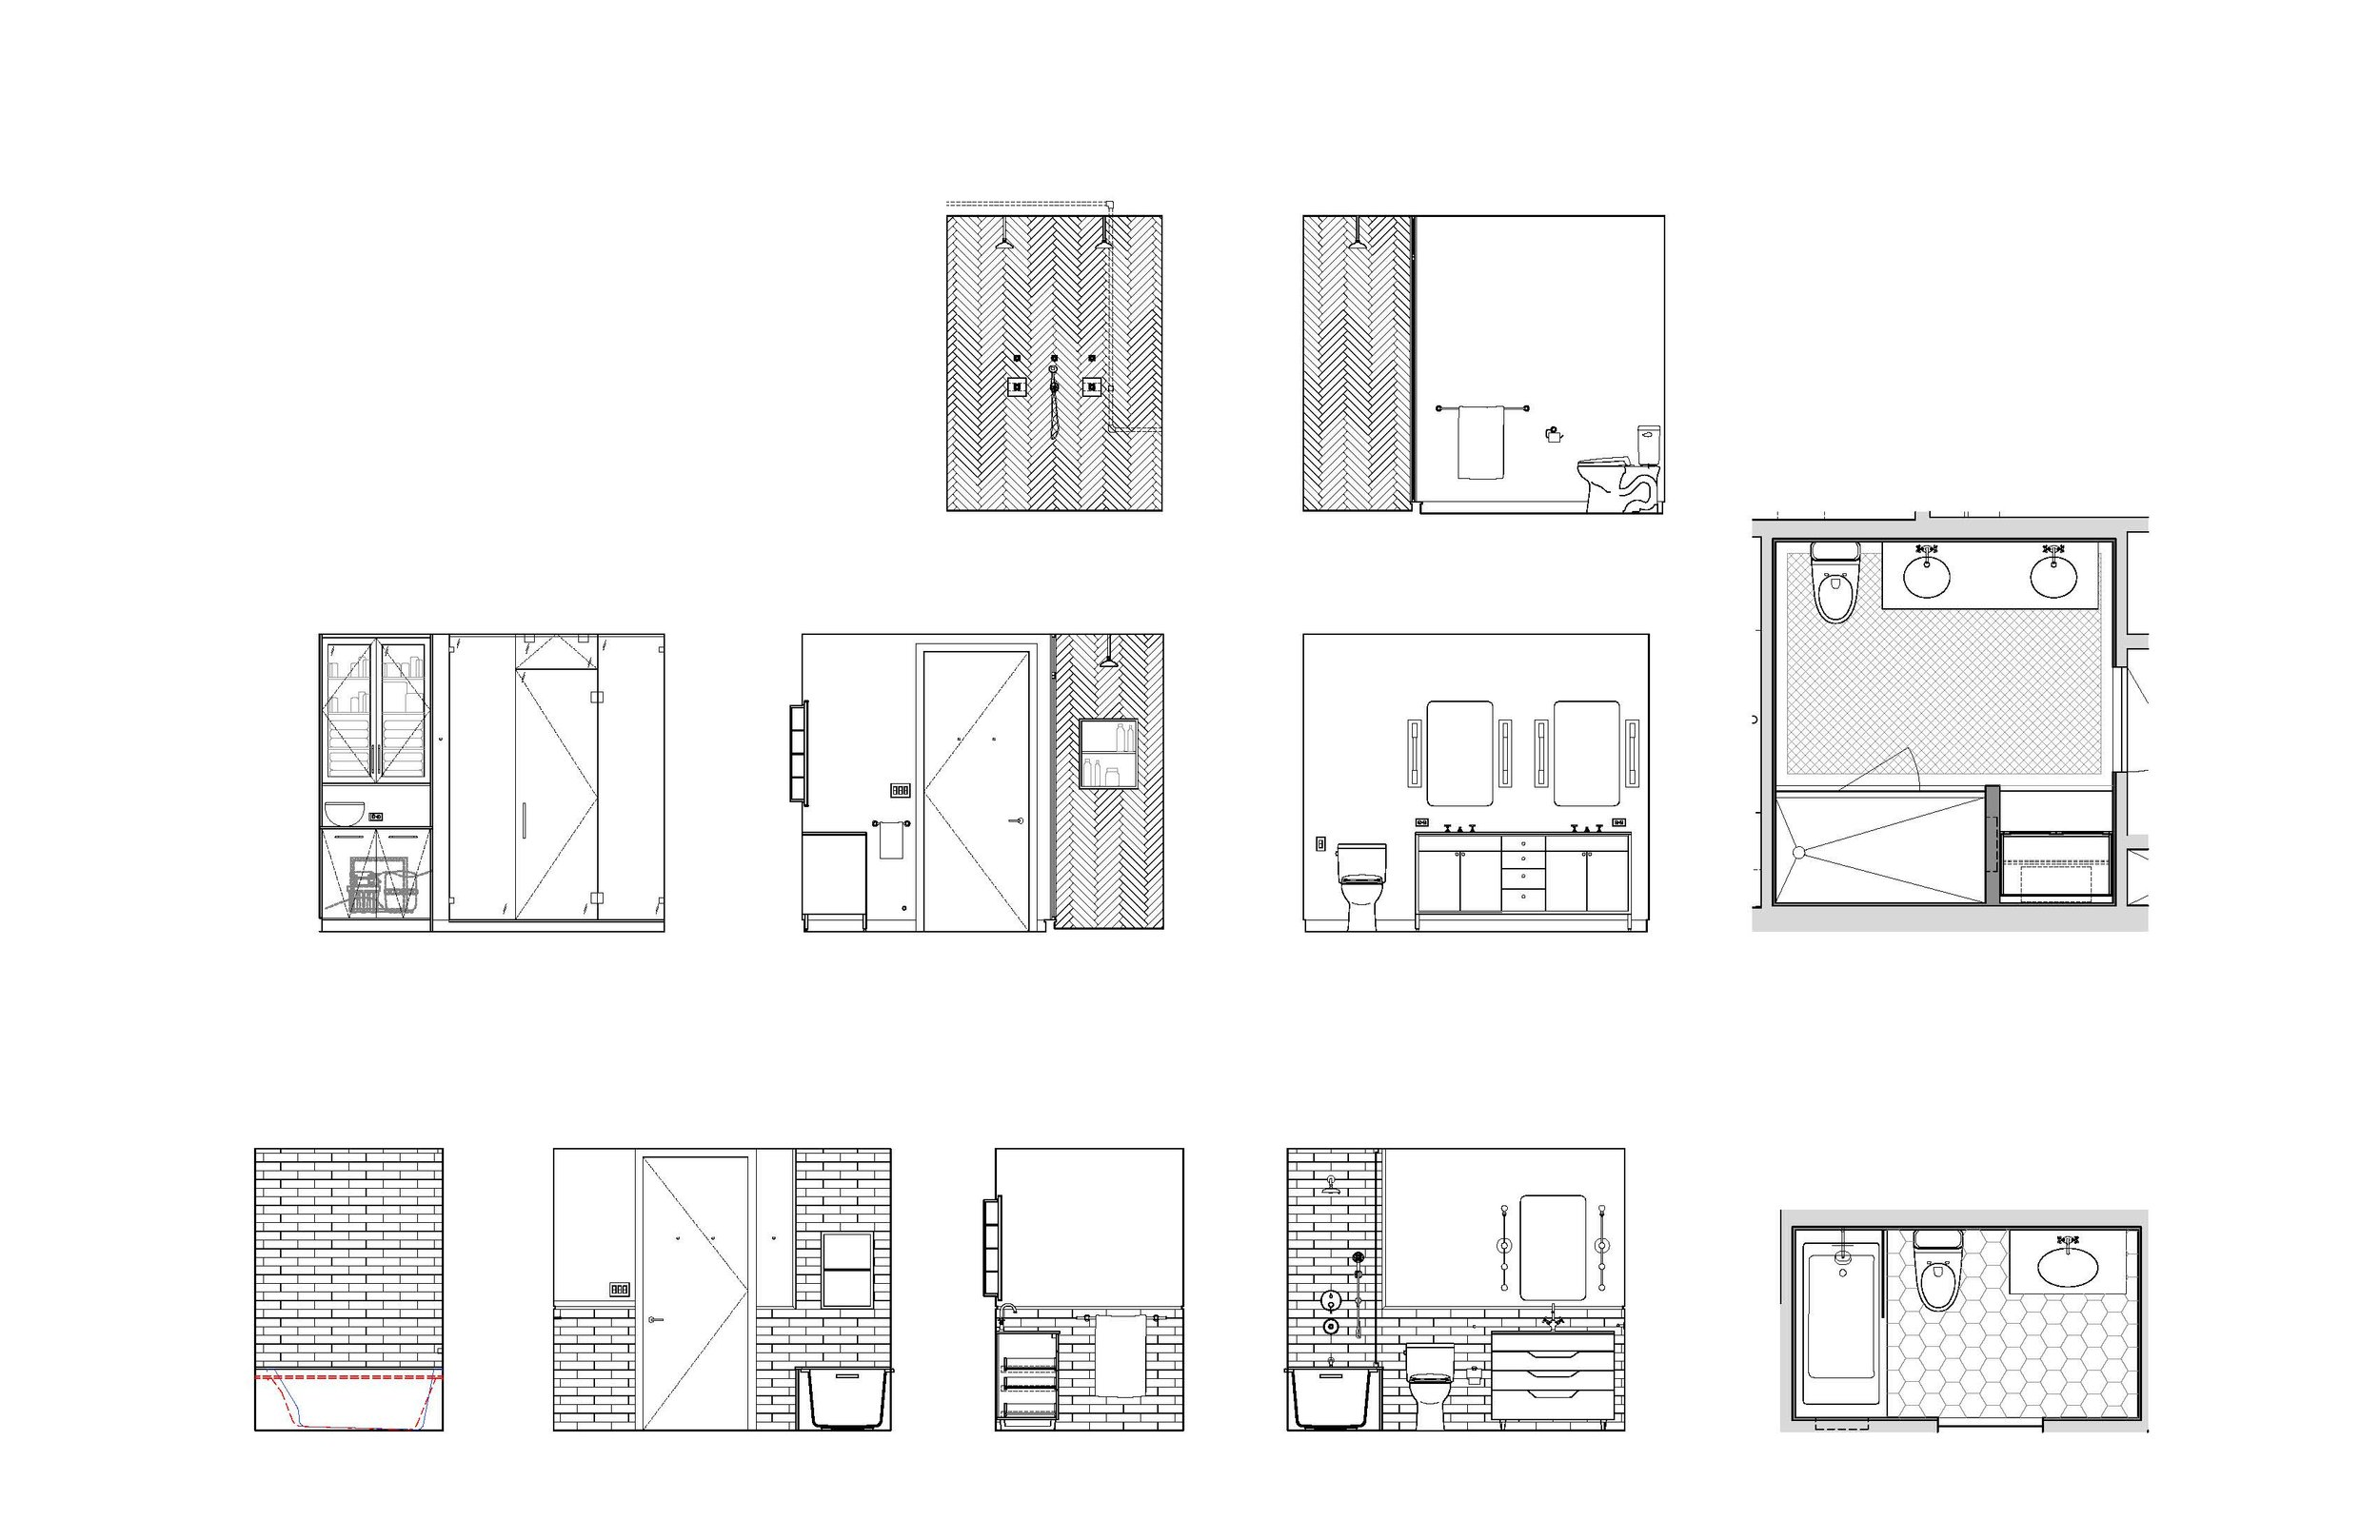 x_Interior Elevations_Kitchens and Baths Model (1).jpg